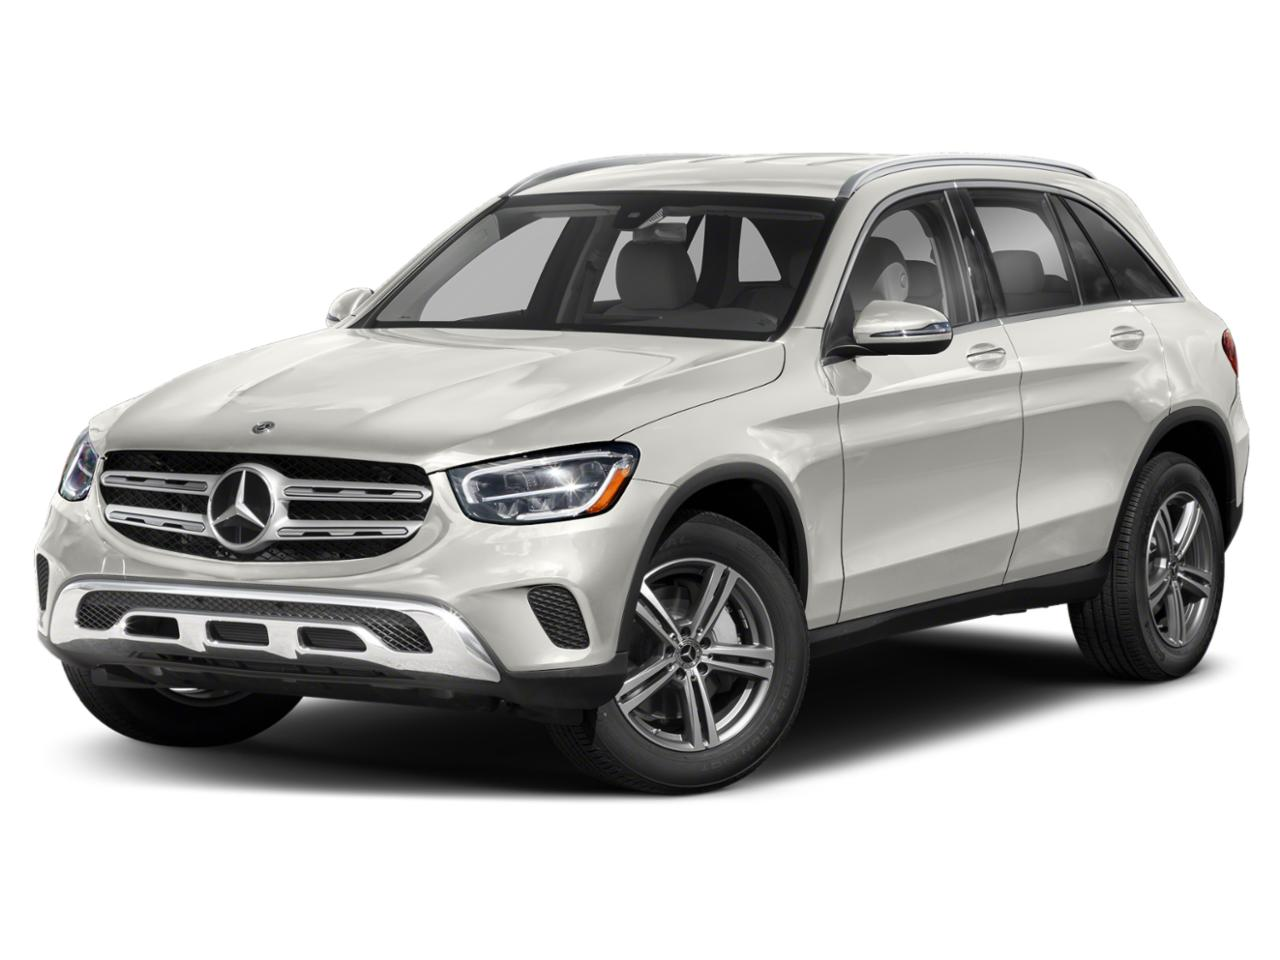 2020 Mercedes-Benz GLC Vehicle Photo in Houston, TX 77090